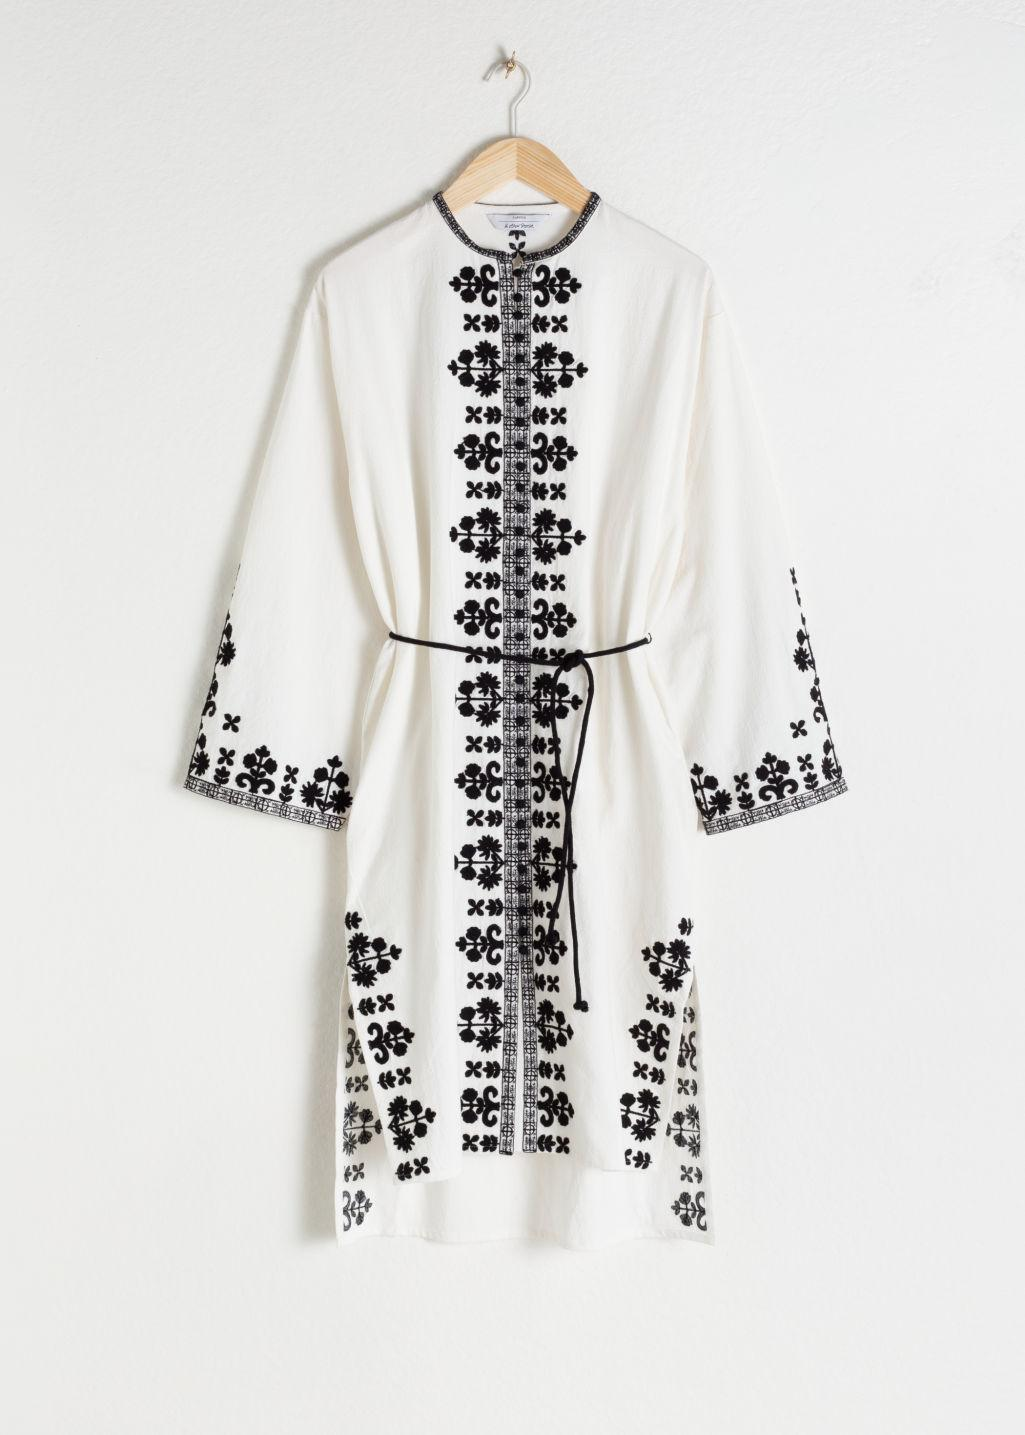 bc775d1f05 ... White Embroidered Cotton Kaftan - Lyst. View fullscreen